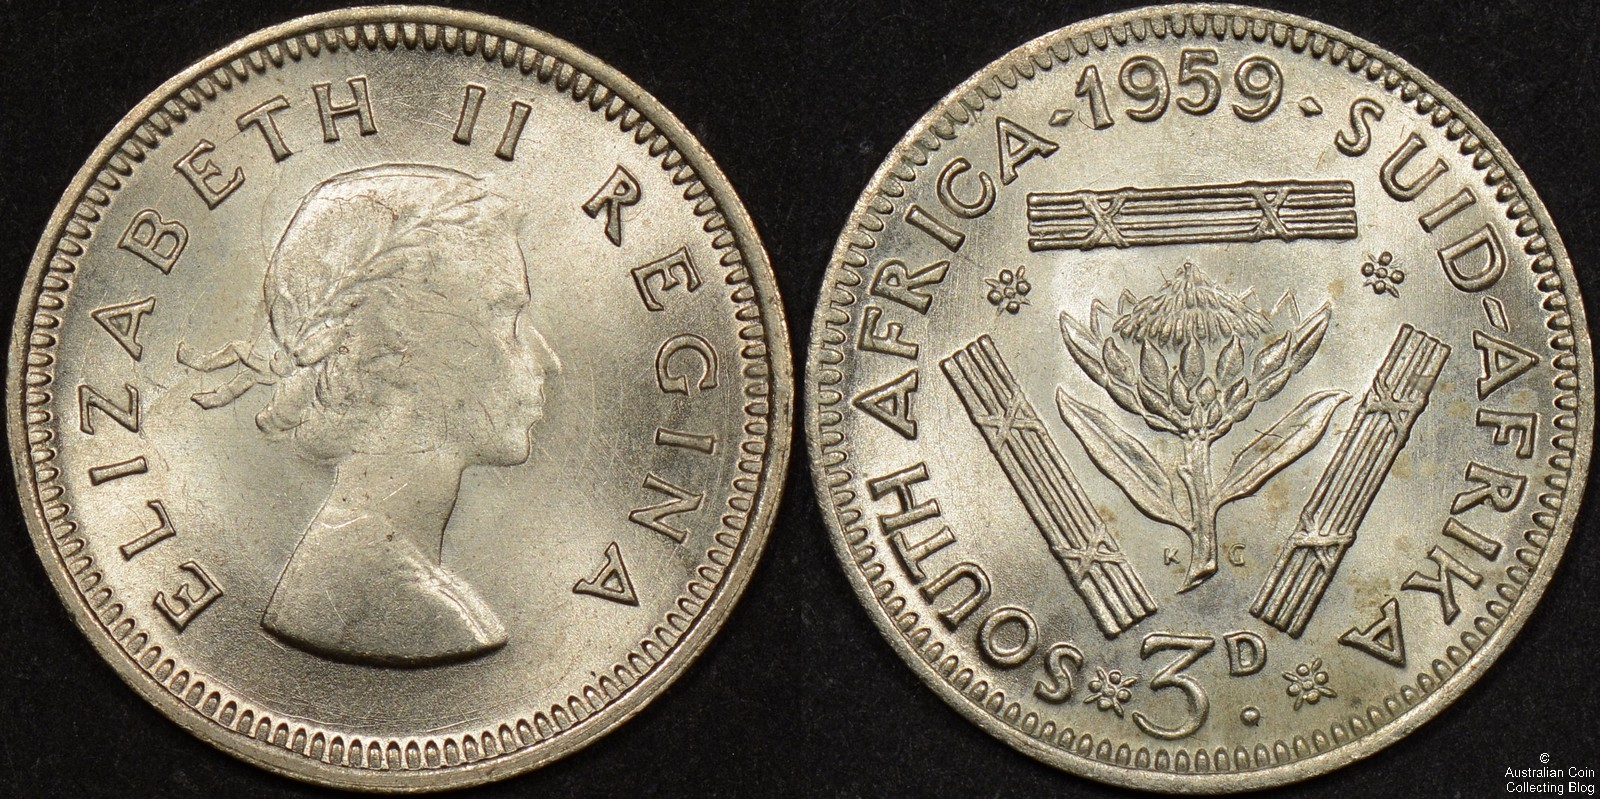 South Africa 1959 3d